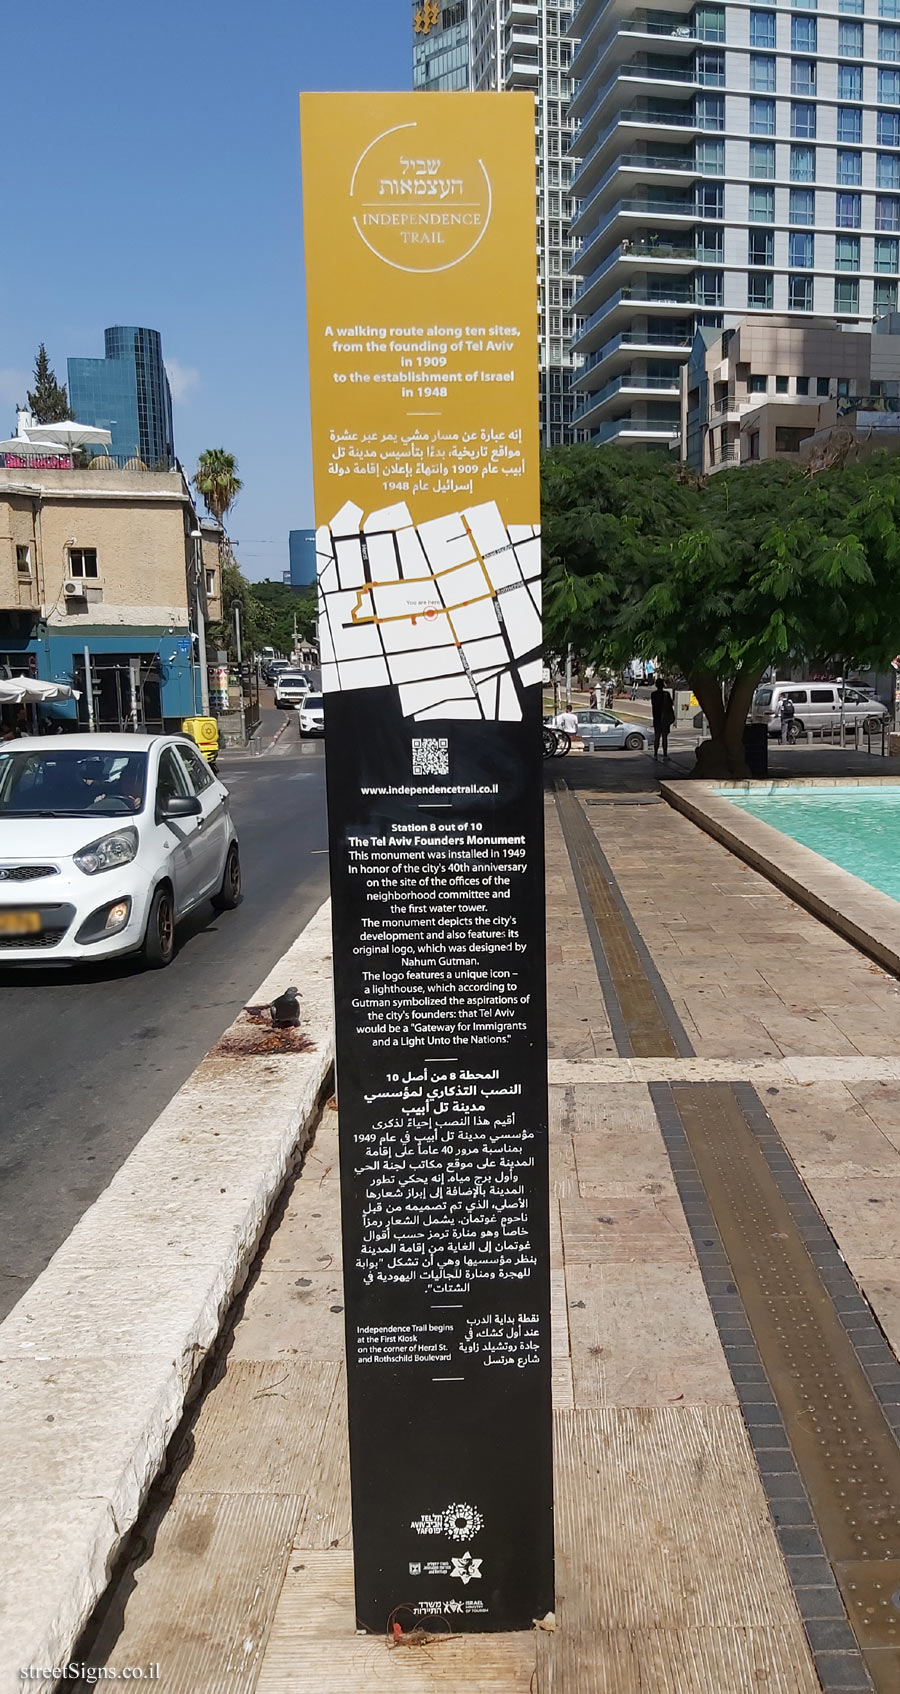 Tel Aviv - Independence Trail - Tel Aviv Founders Monument - Information (English and Arabic)